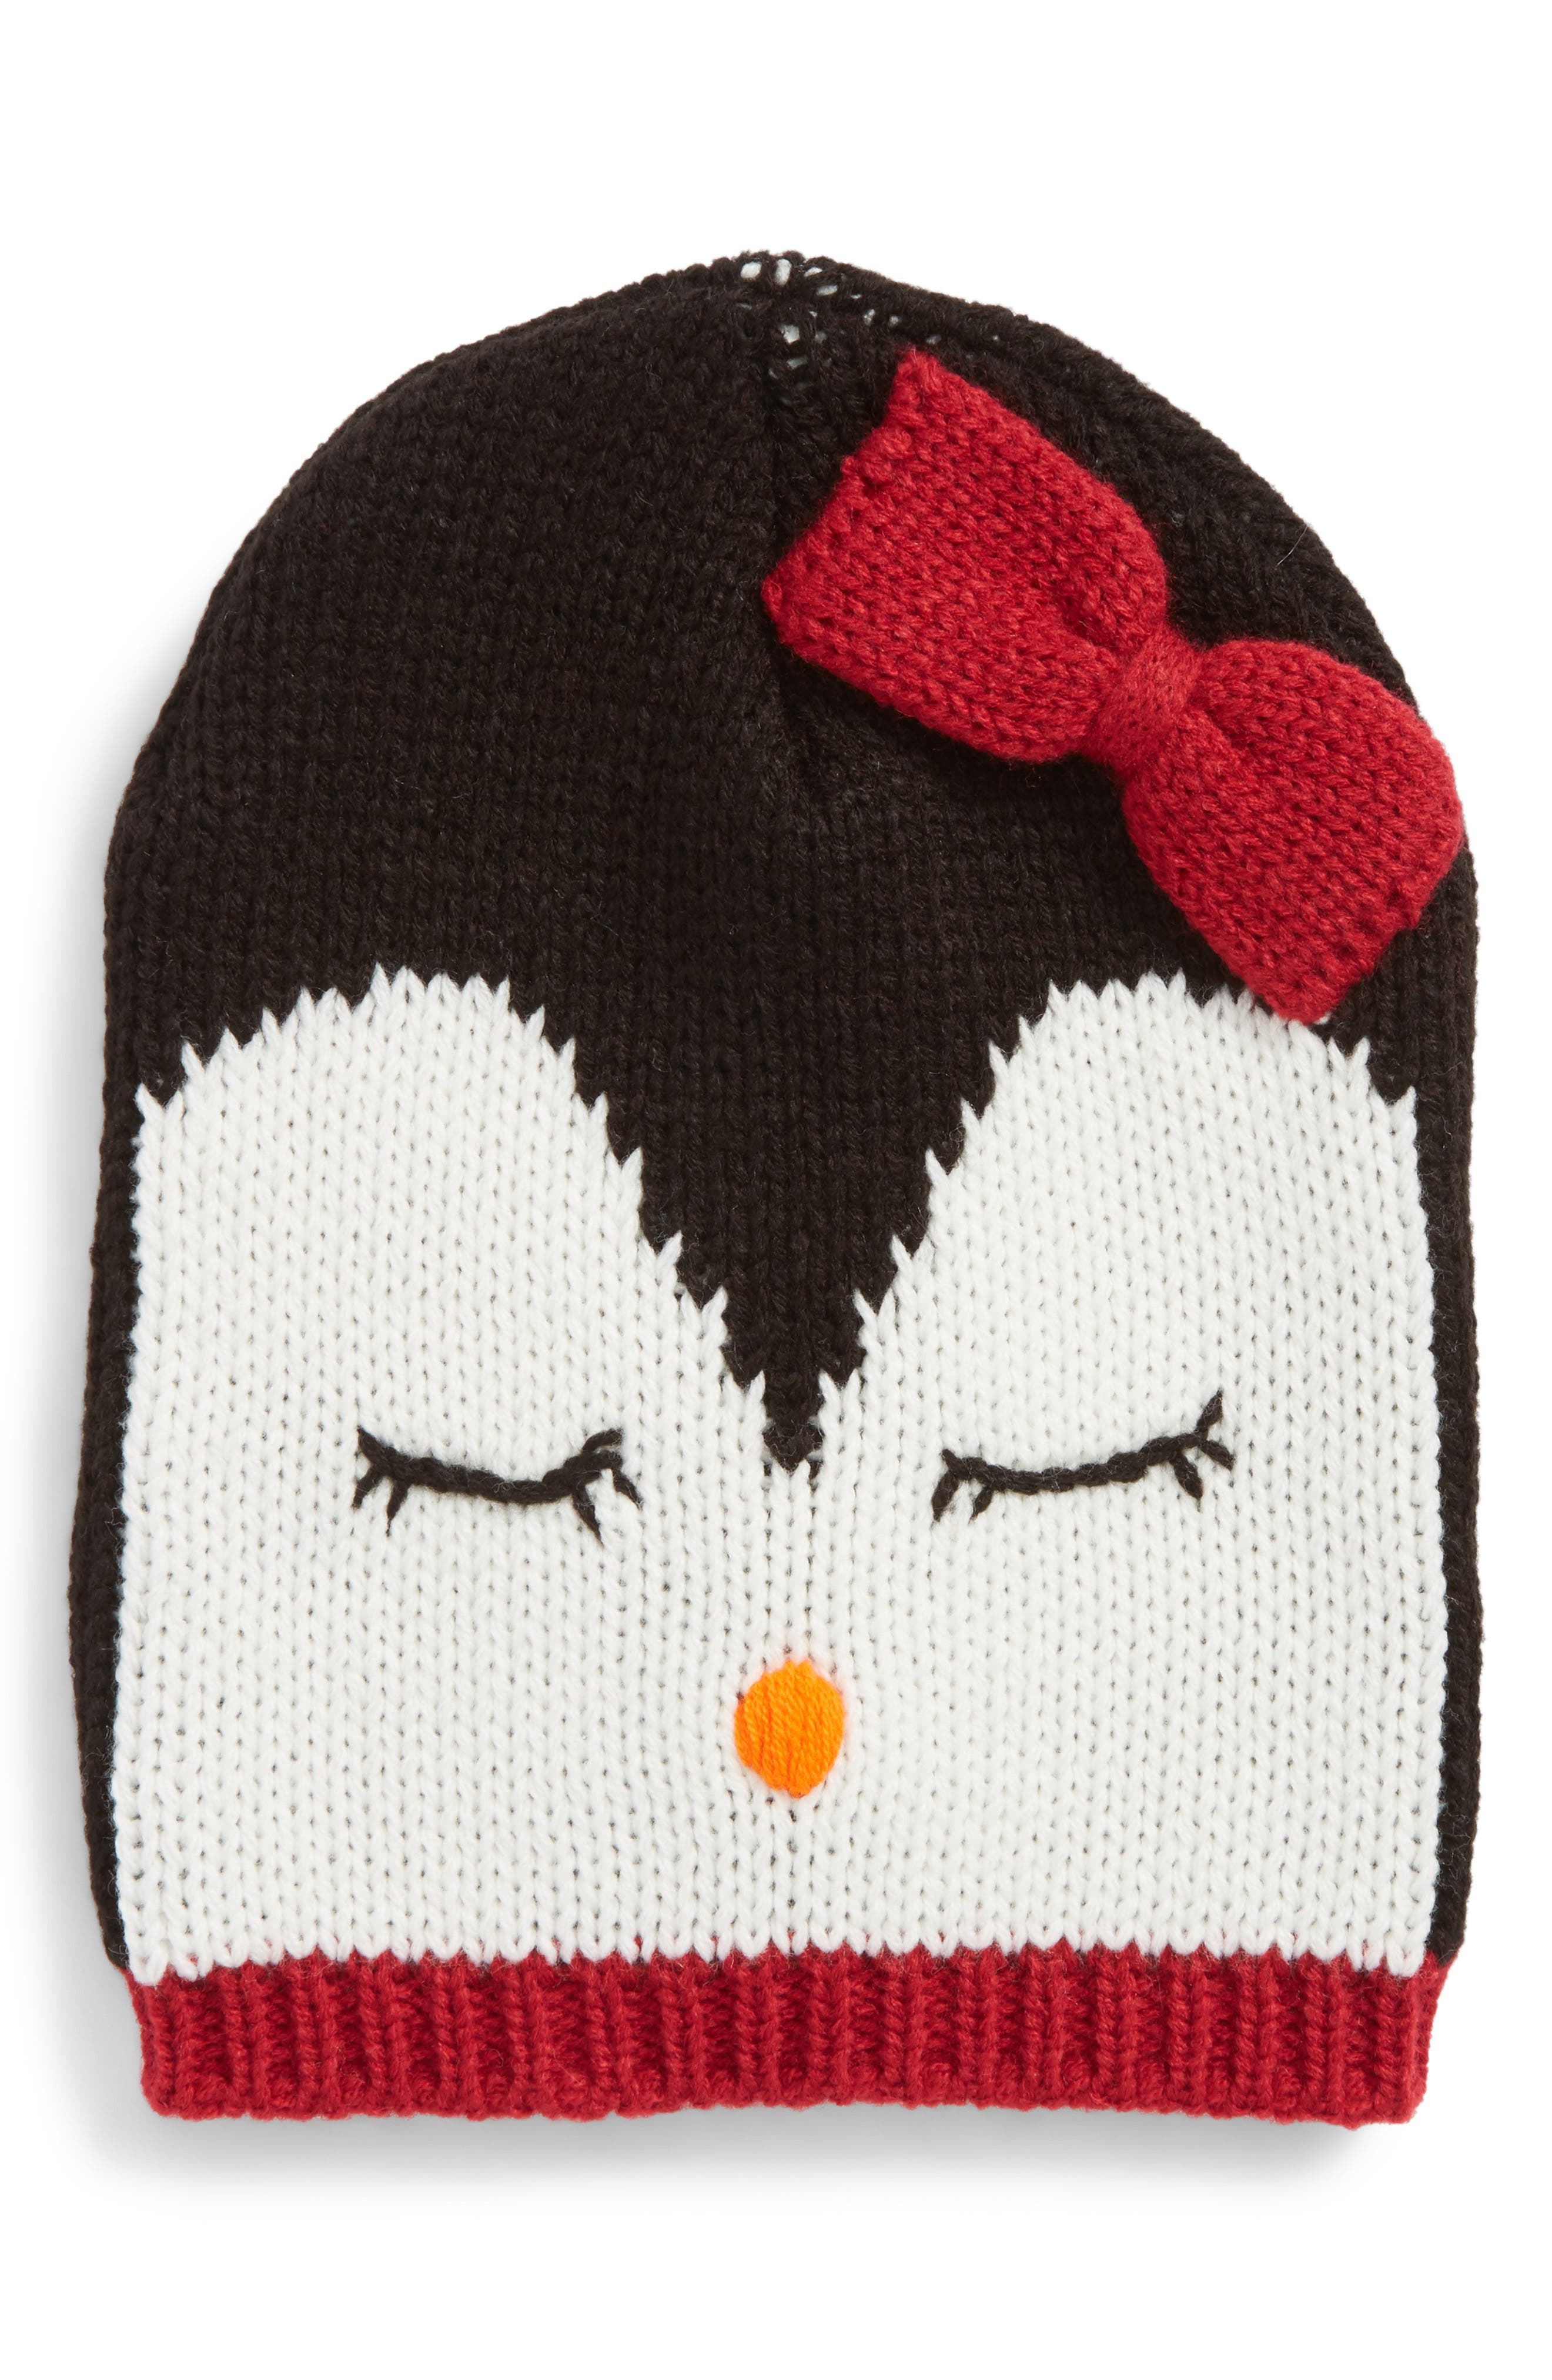 Penguin Face Beanie,                             Main thumbnail 1, color,                             001